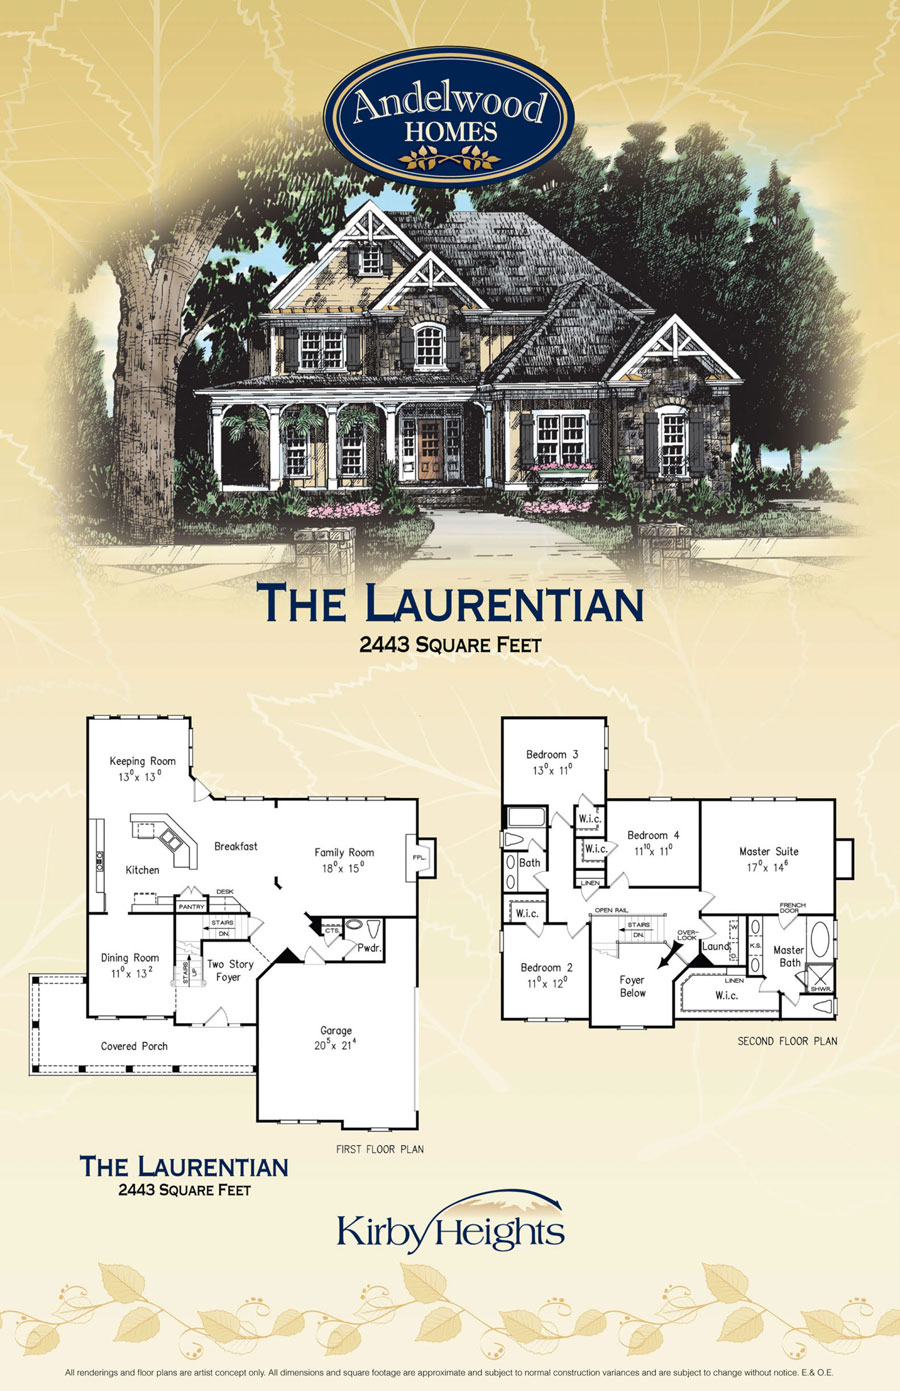 The Laurentian